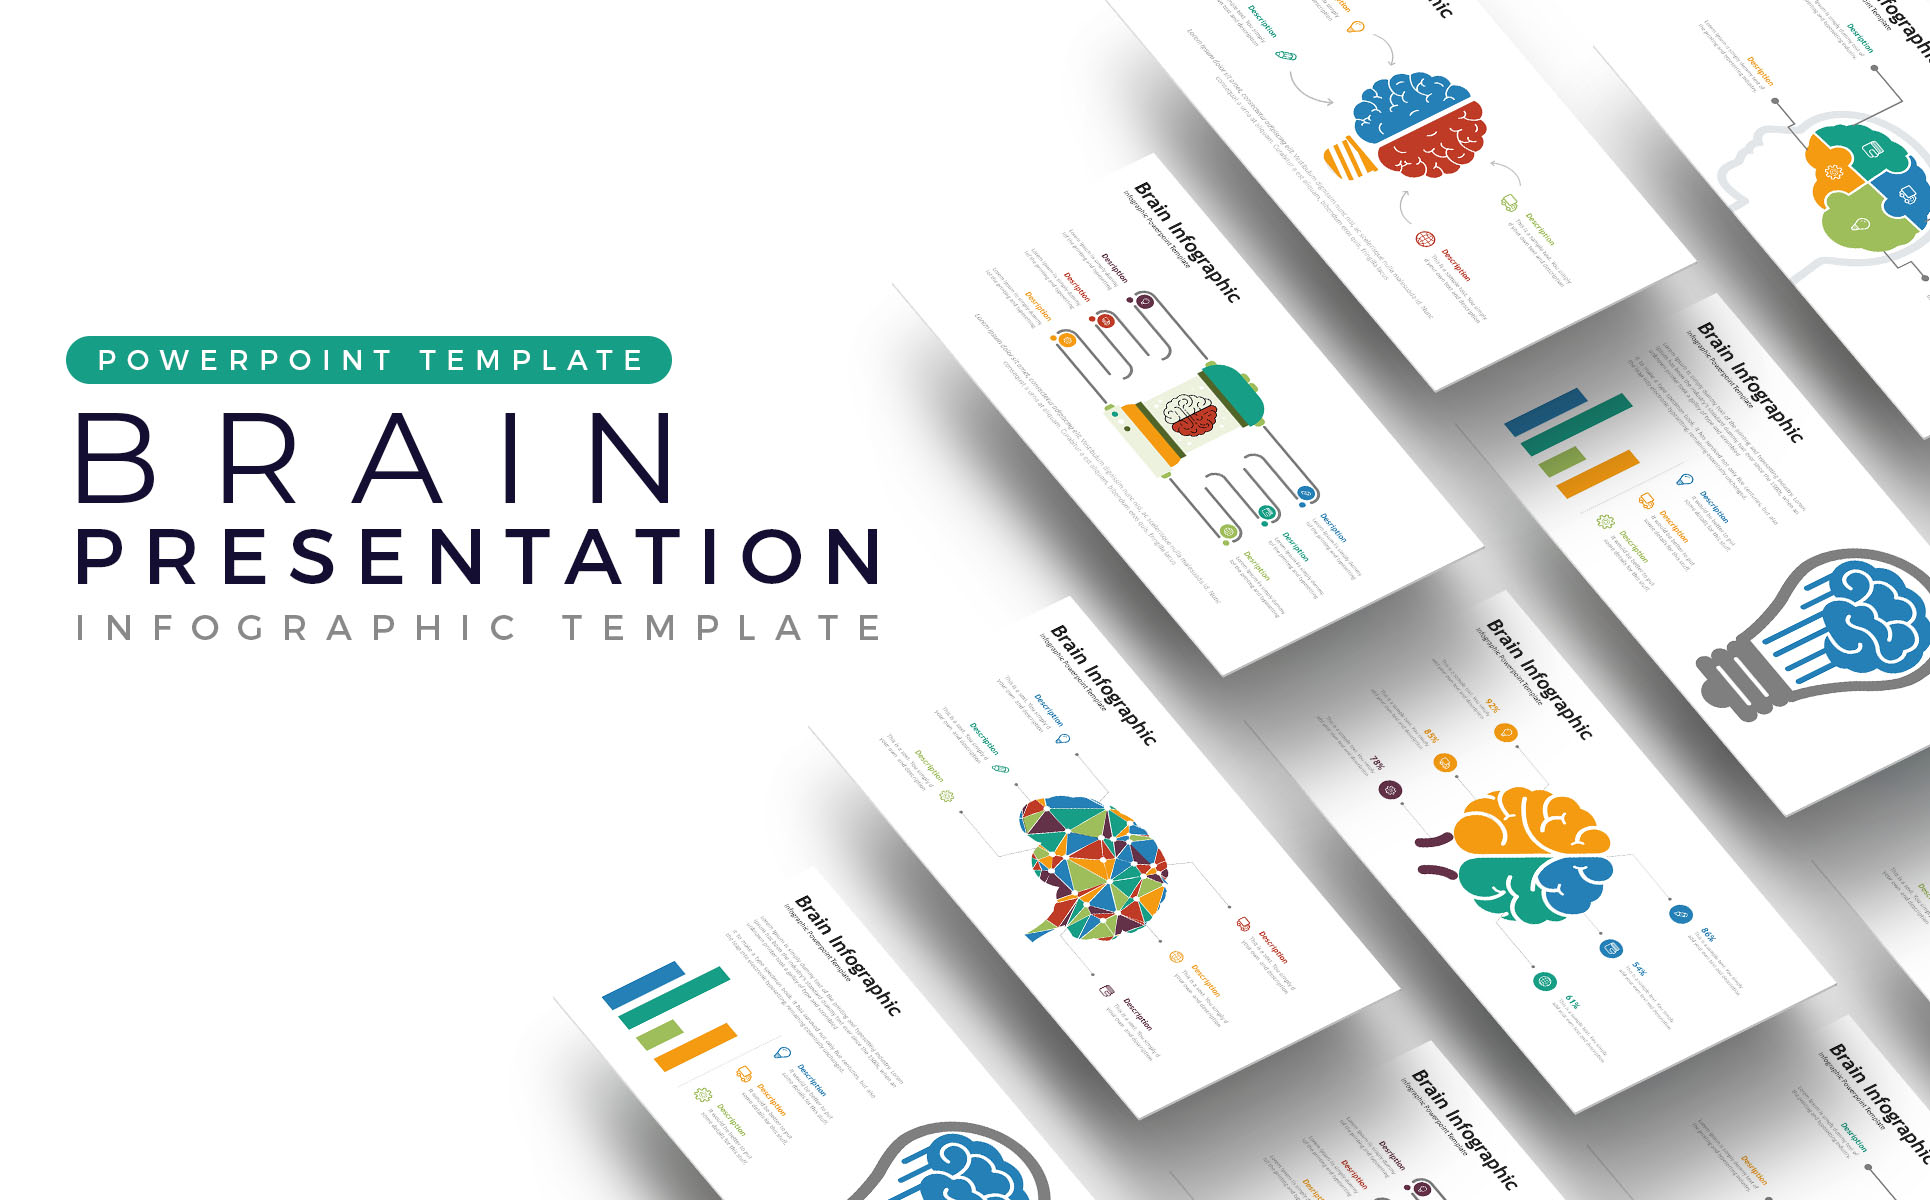 Brain Presentation -  Infographic PowerPoint Template